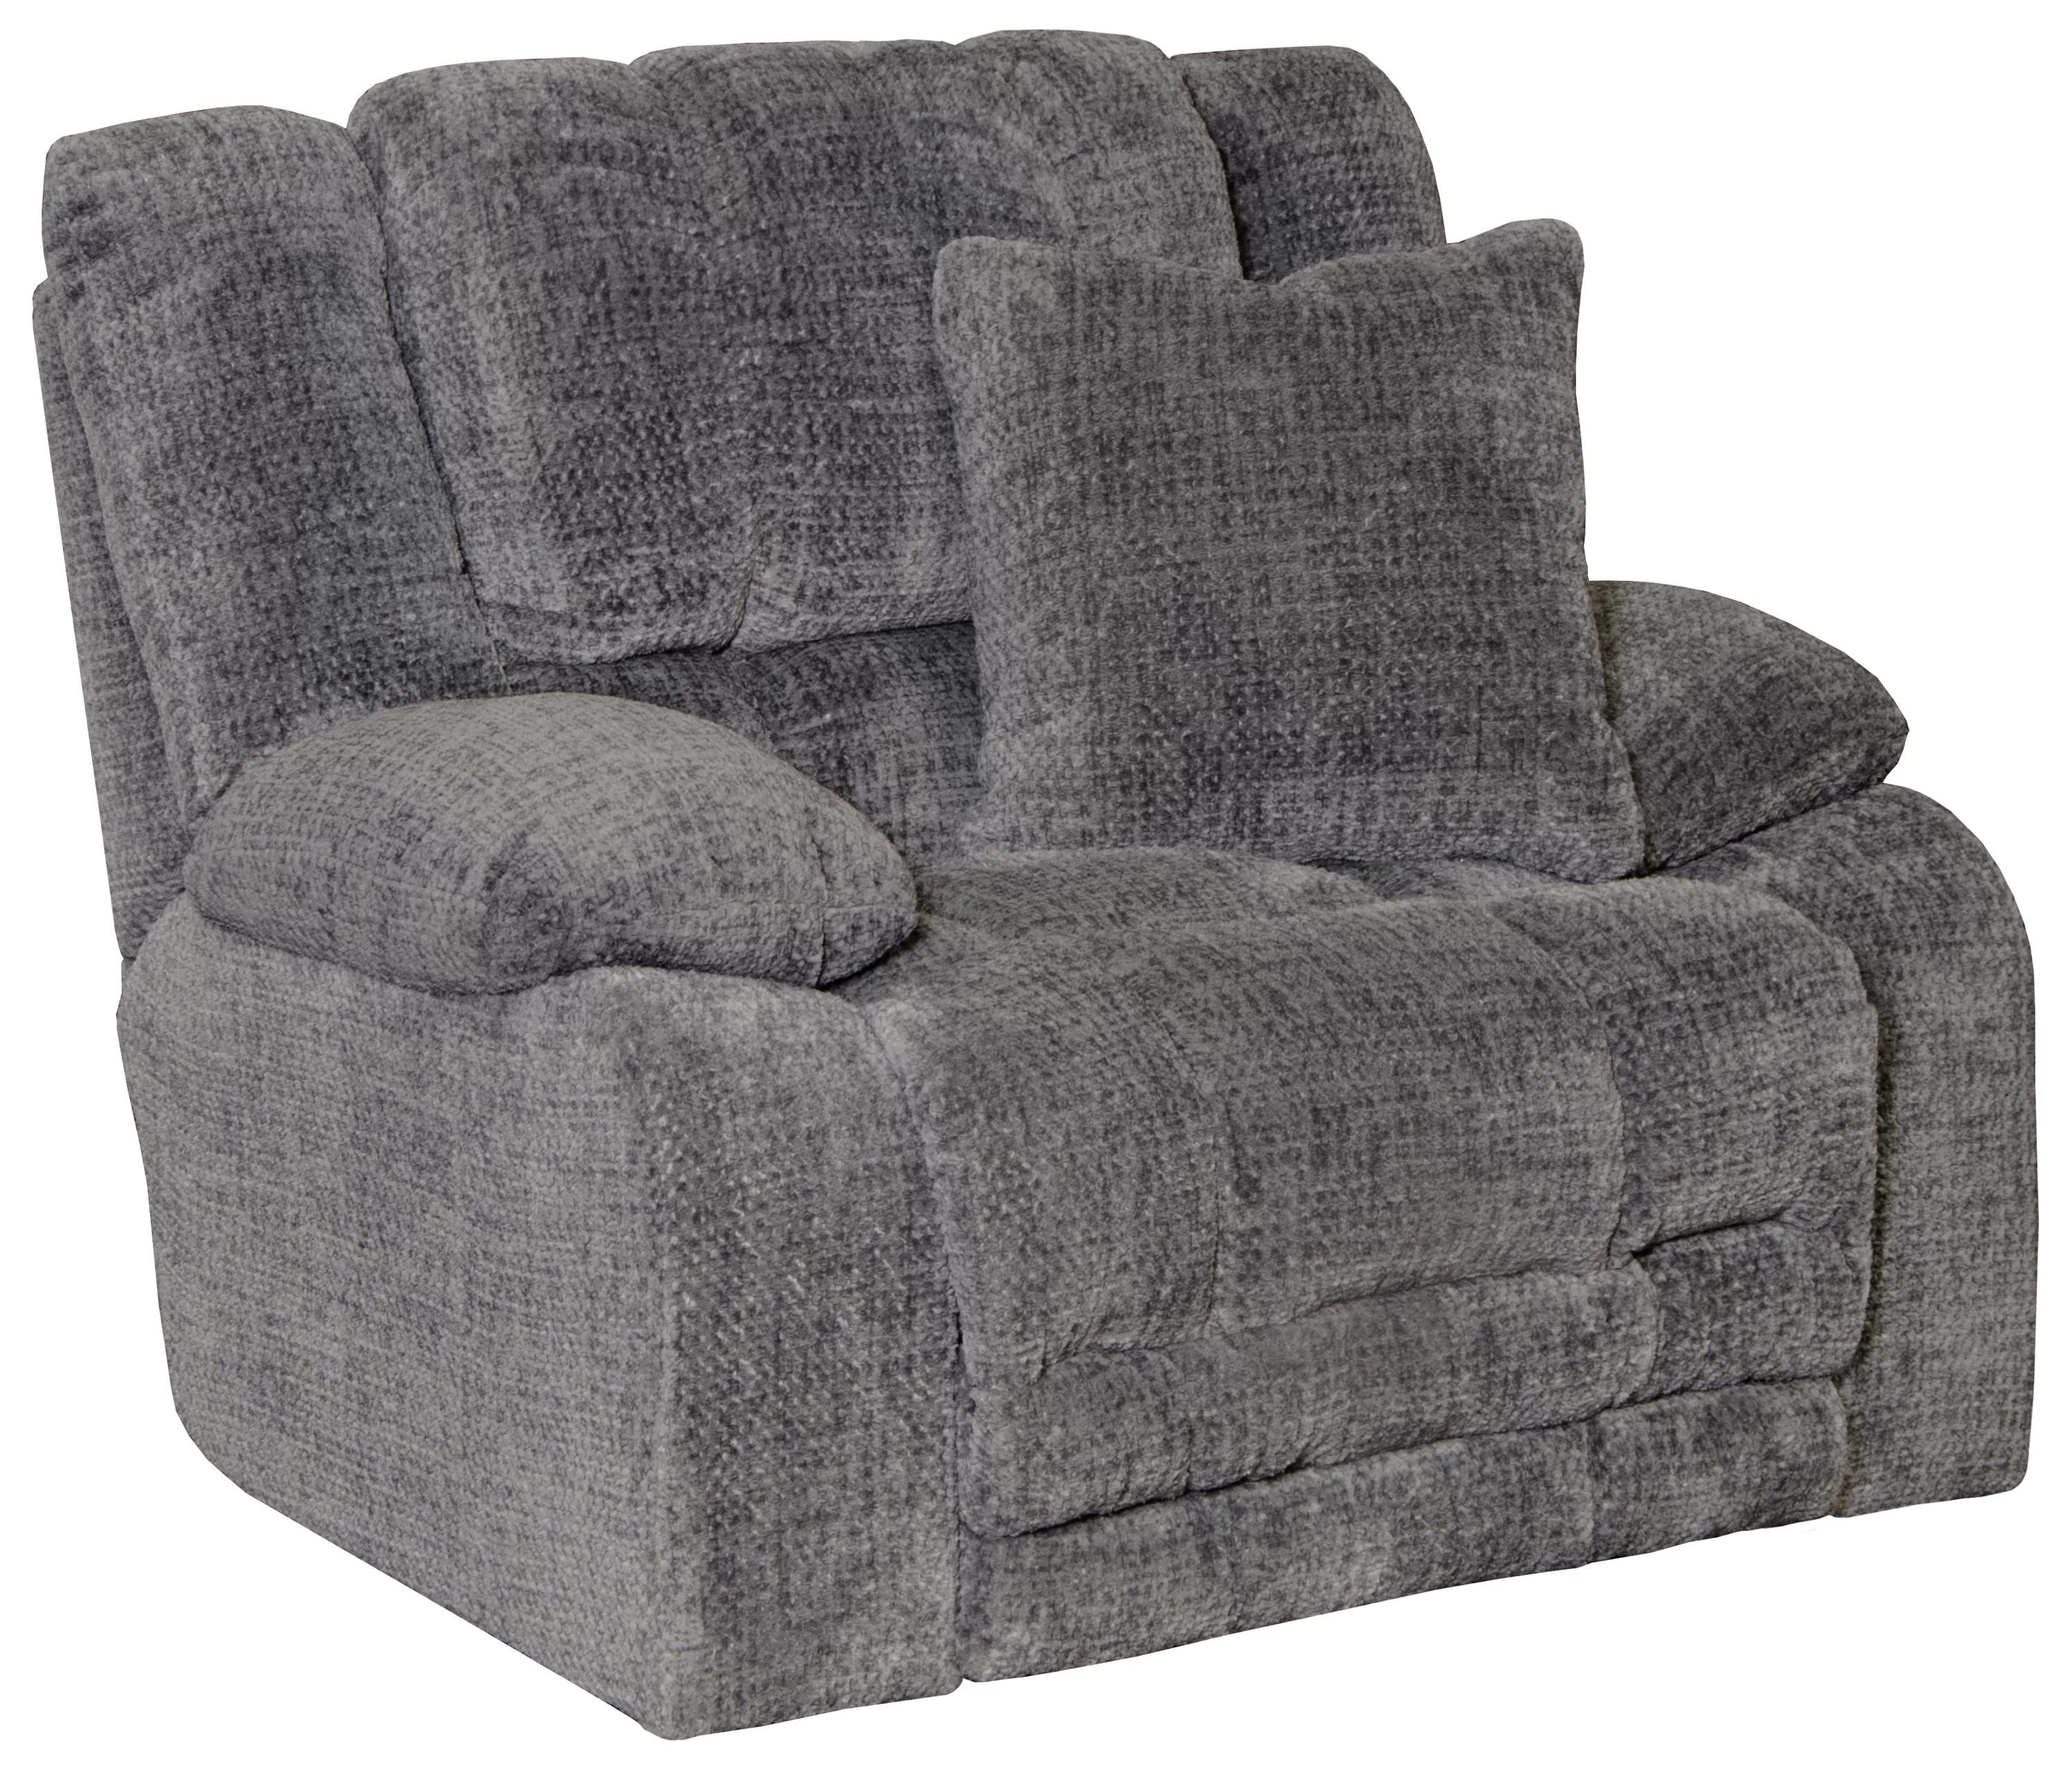 Sofa Express Locations Catnapper Wayfair